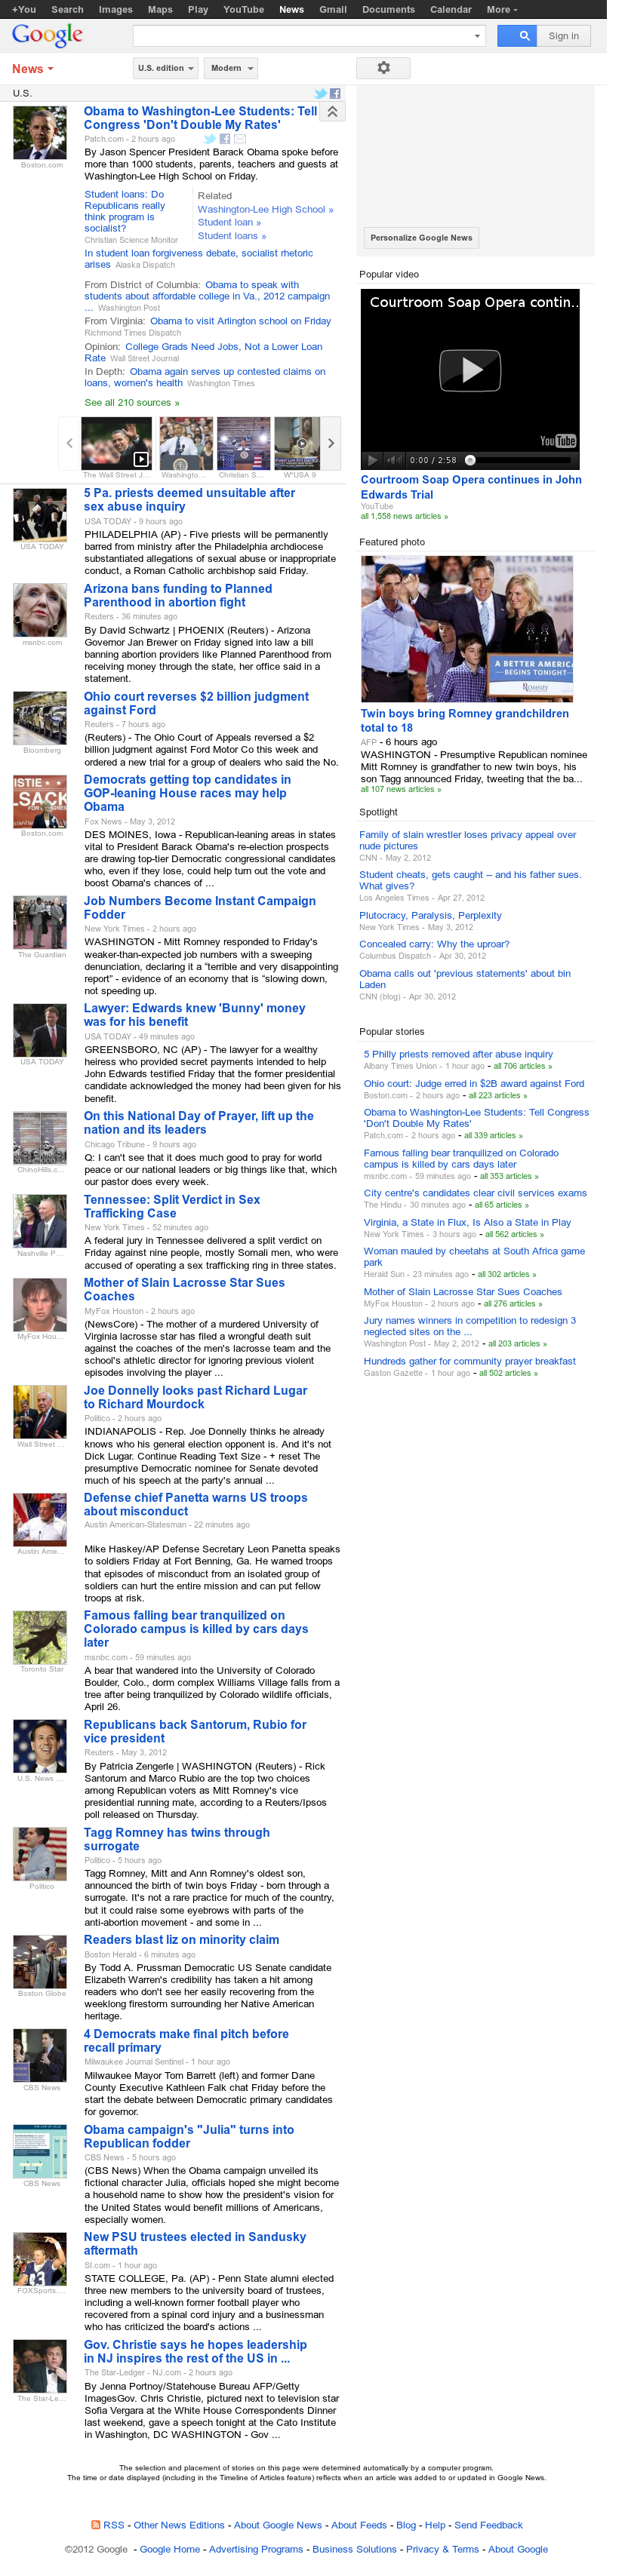 Google News: U.S. at Saturday May 5, 2012, 4:06 a.m. UTC